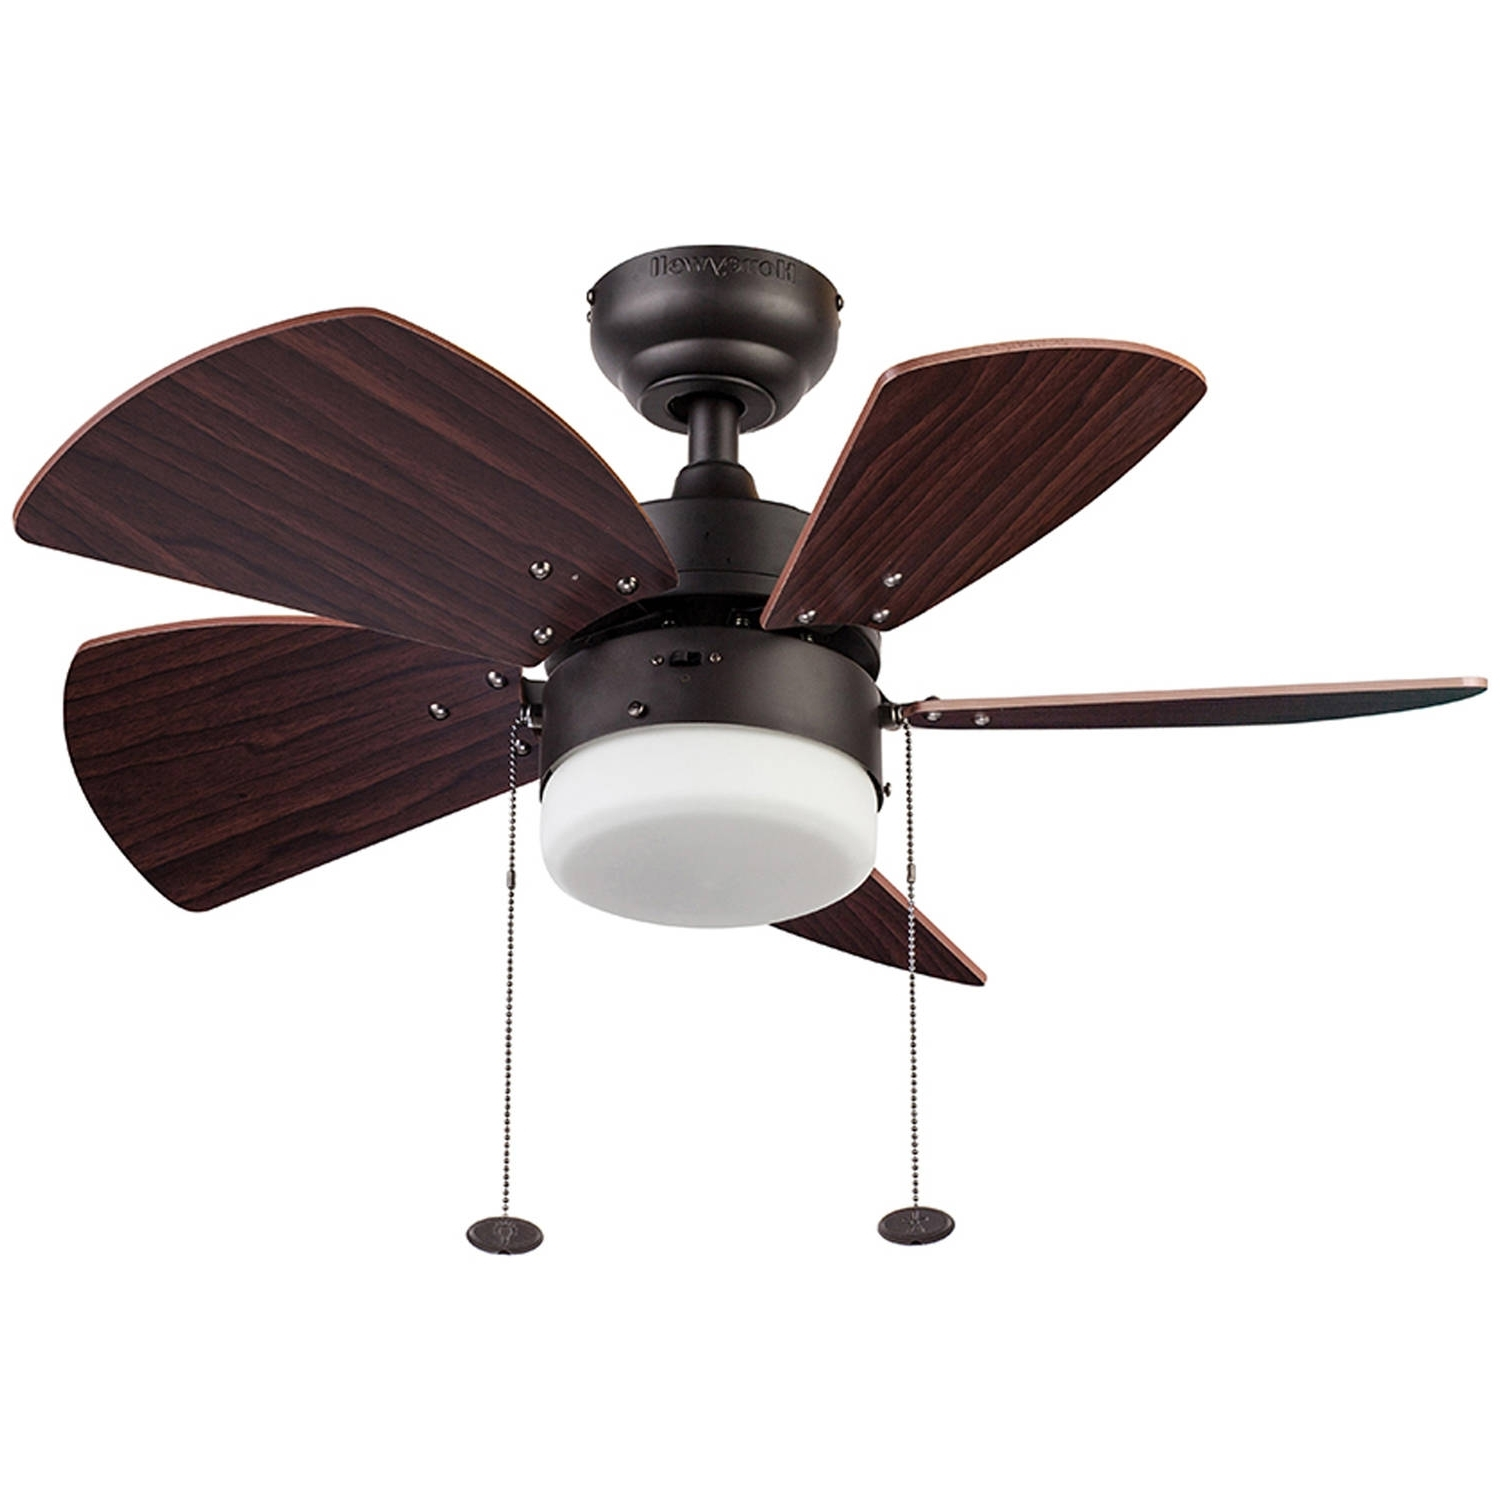 Outdoor Ceiling Fans At Walmart Pertaining To Recent 30quot; Honeywell Lenox Ceiling Fan, Bronze Walmartcom, Ceiling Fans (View 5 of 20)